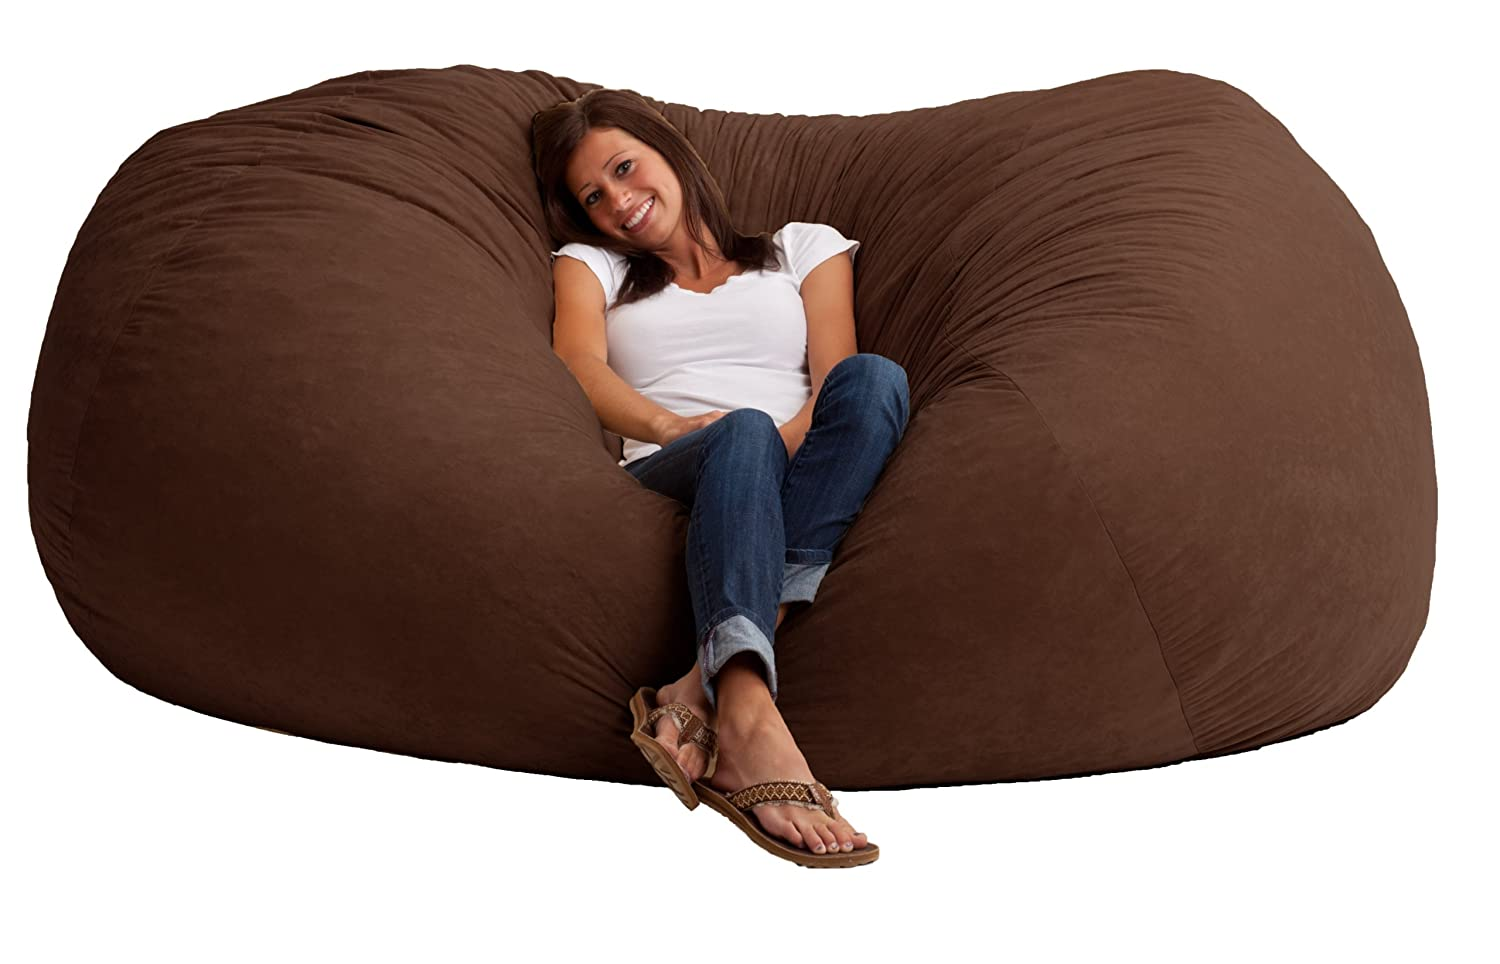 Beanbag Chairs Chair Sofa Oversized Furniture Recline Comfort Seat Lounge